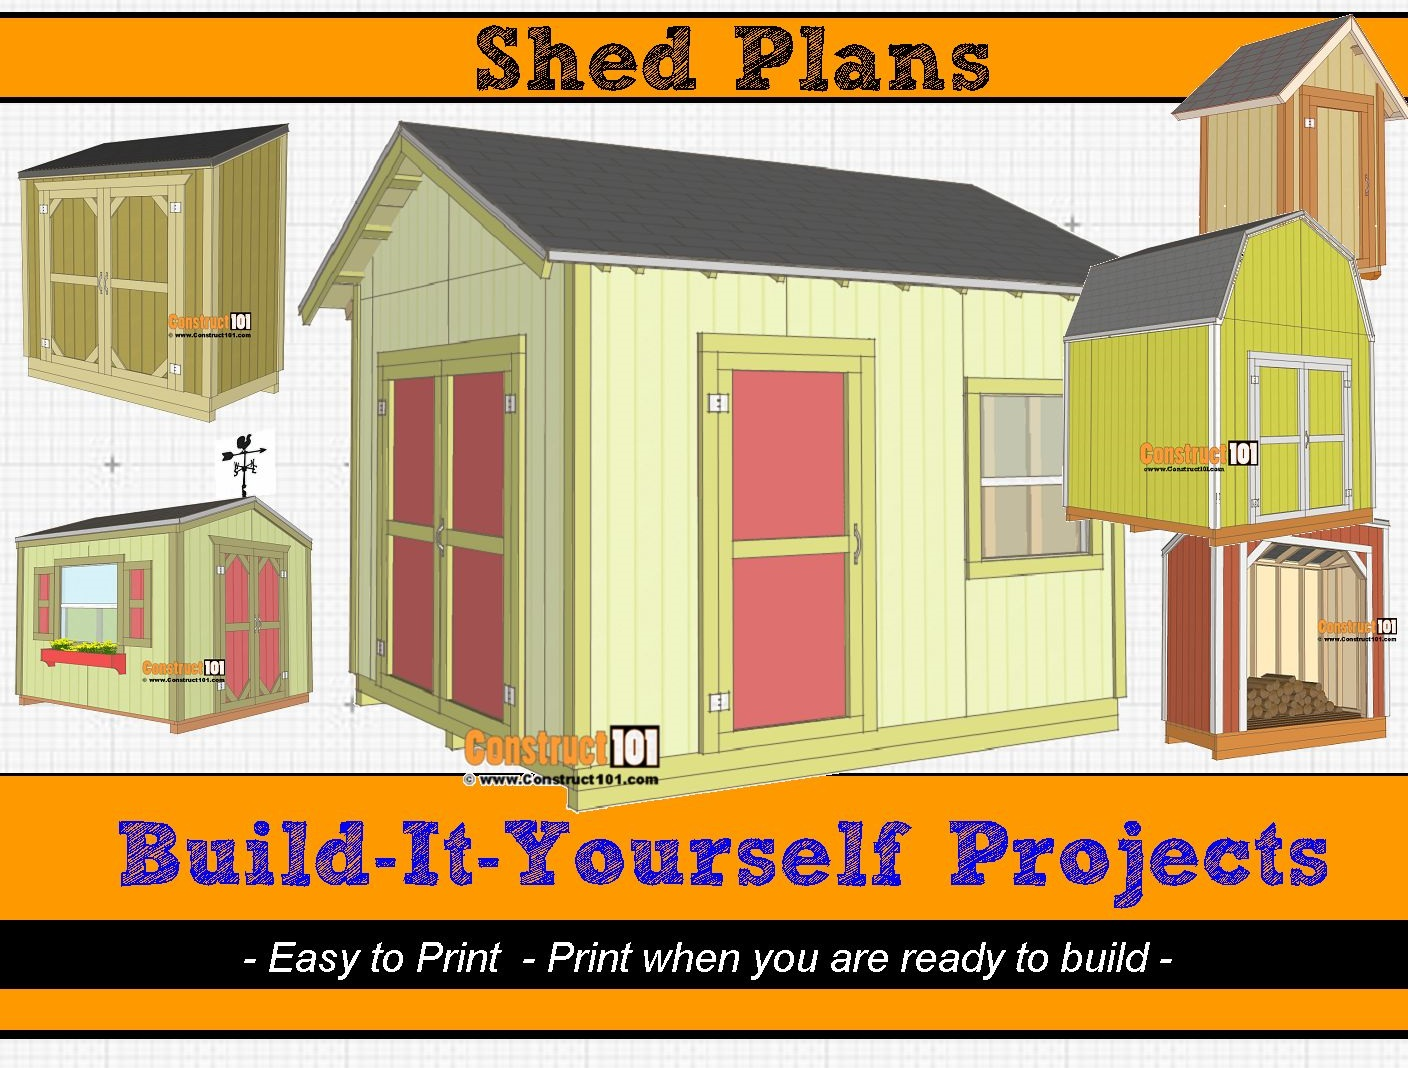 Shed Plans - PDF Download - Material List - Drawings